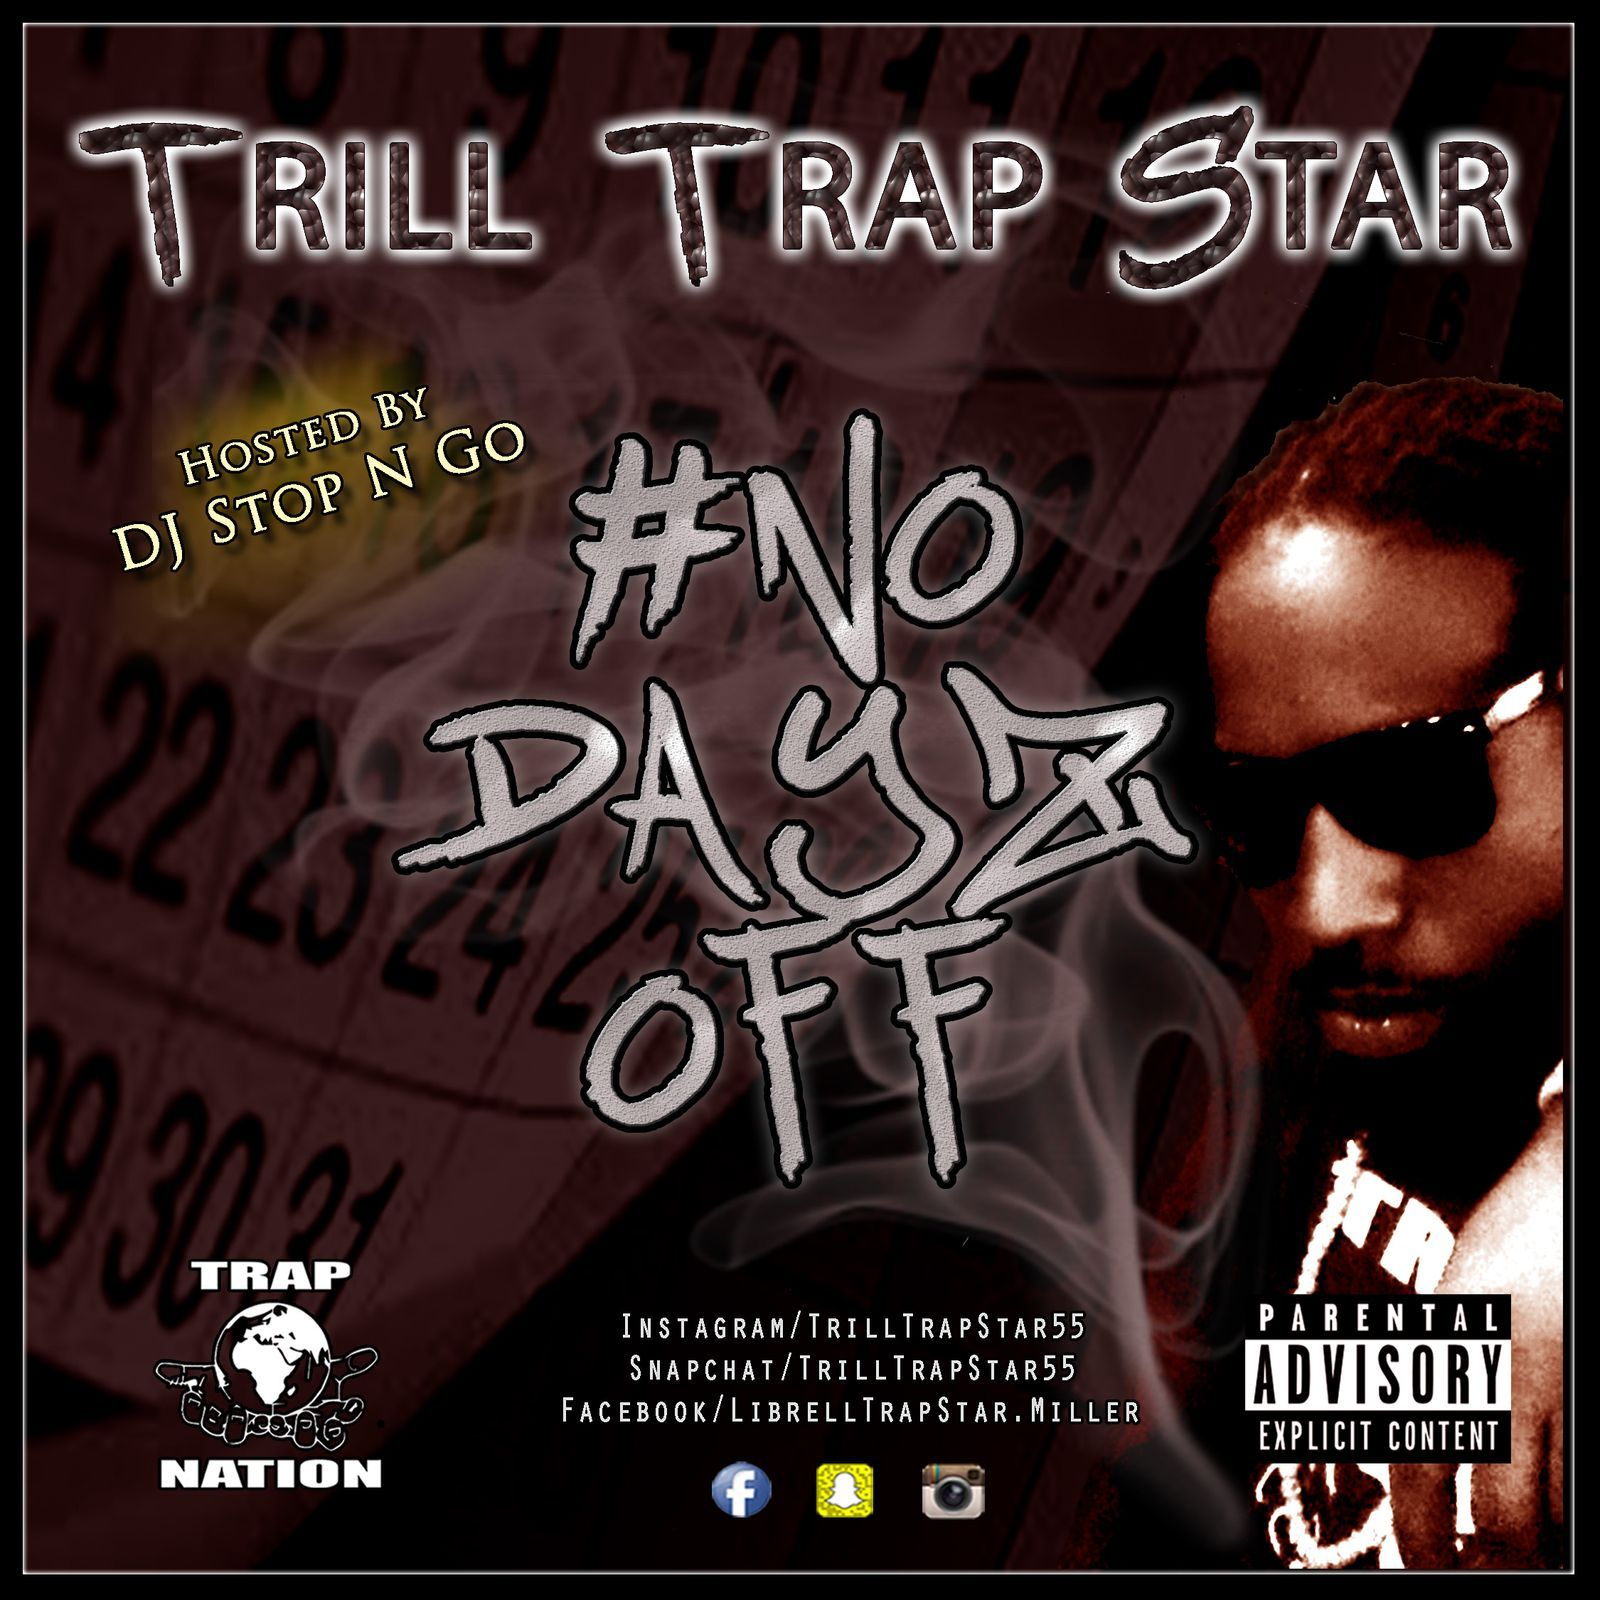 Trill trap star no dayz off hosted by dj stop n go ft trill trap star dj stop n go - Trap spar ...